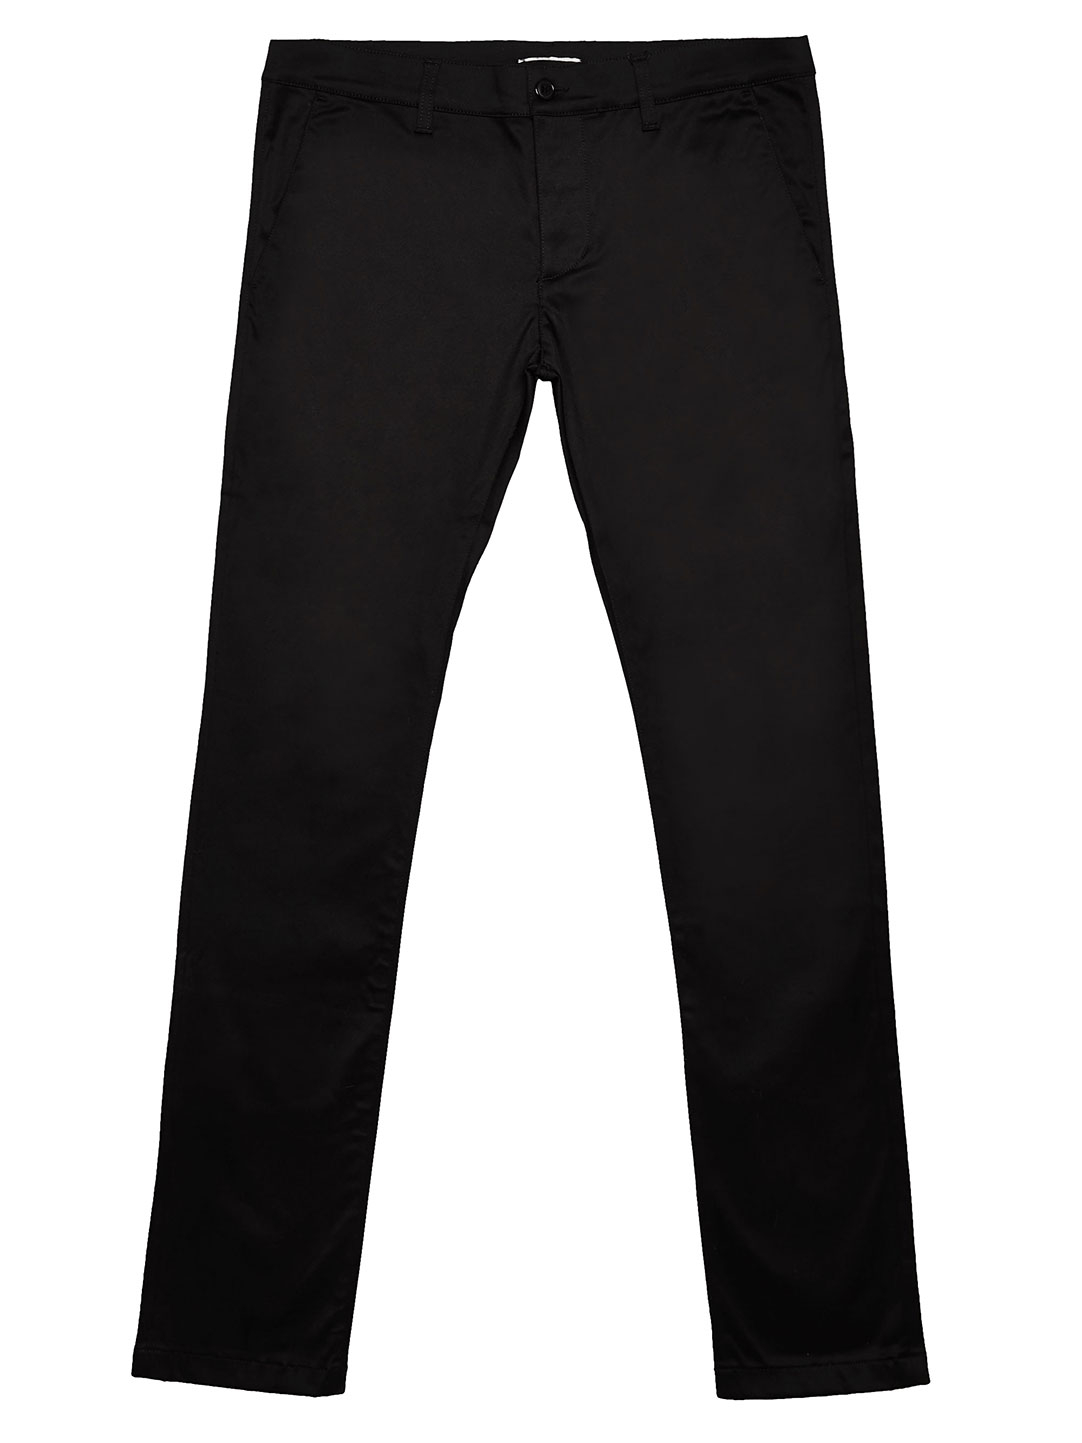 Saint laurent Mens Slim Fit Chino Pants in Black for Men | Lyst